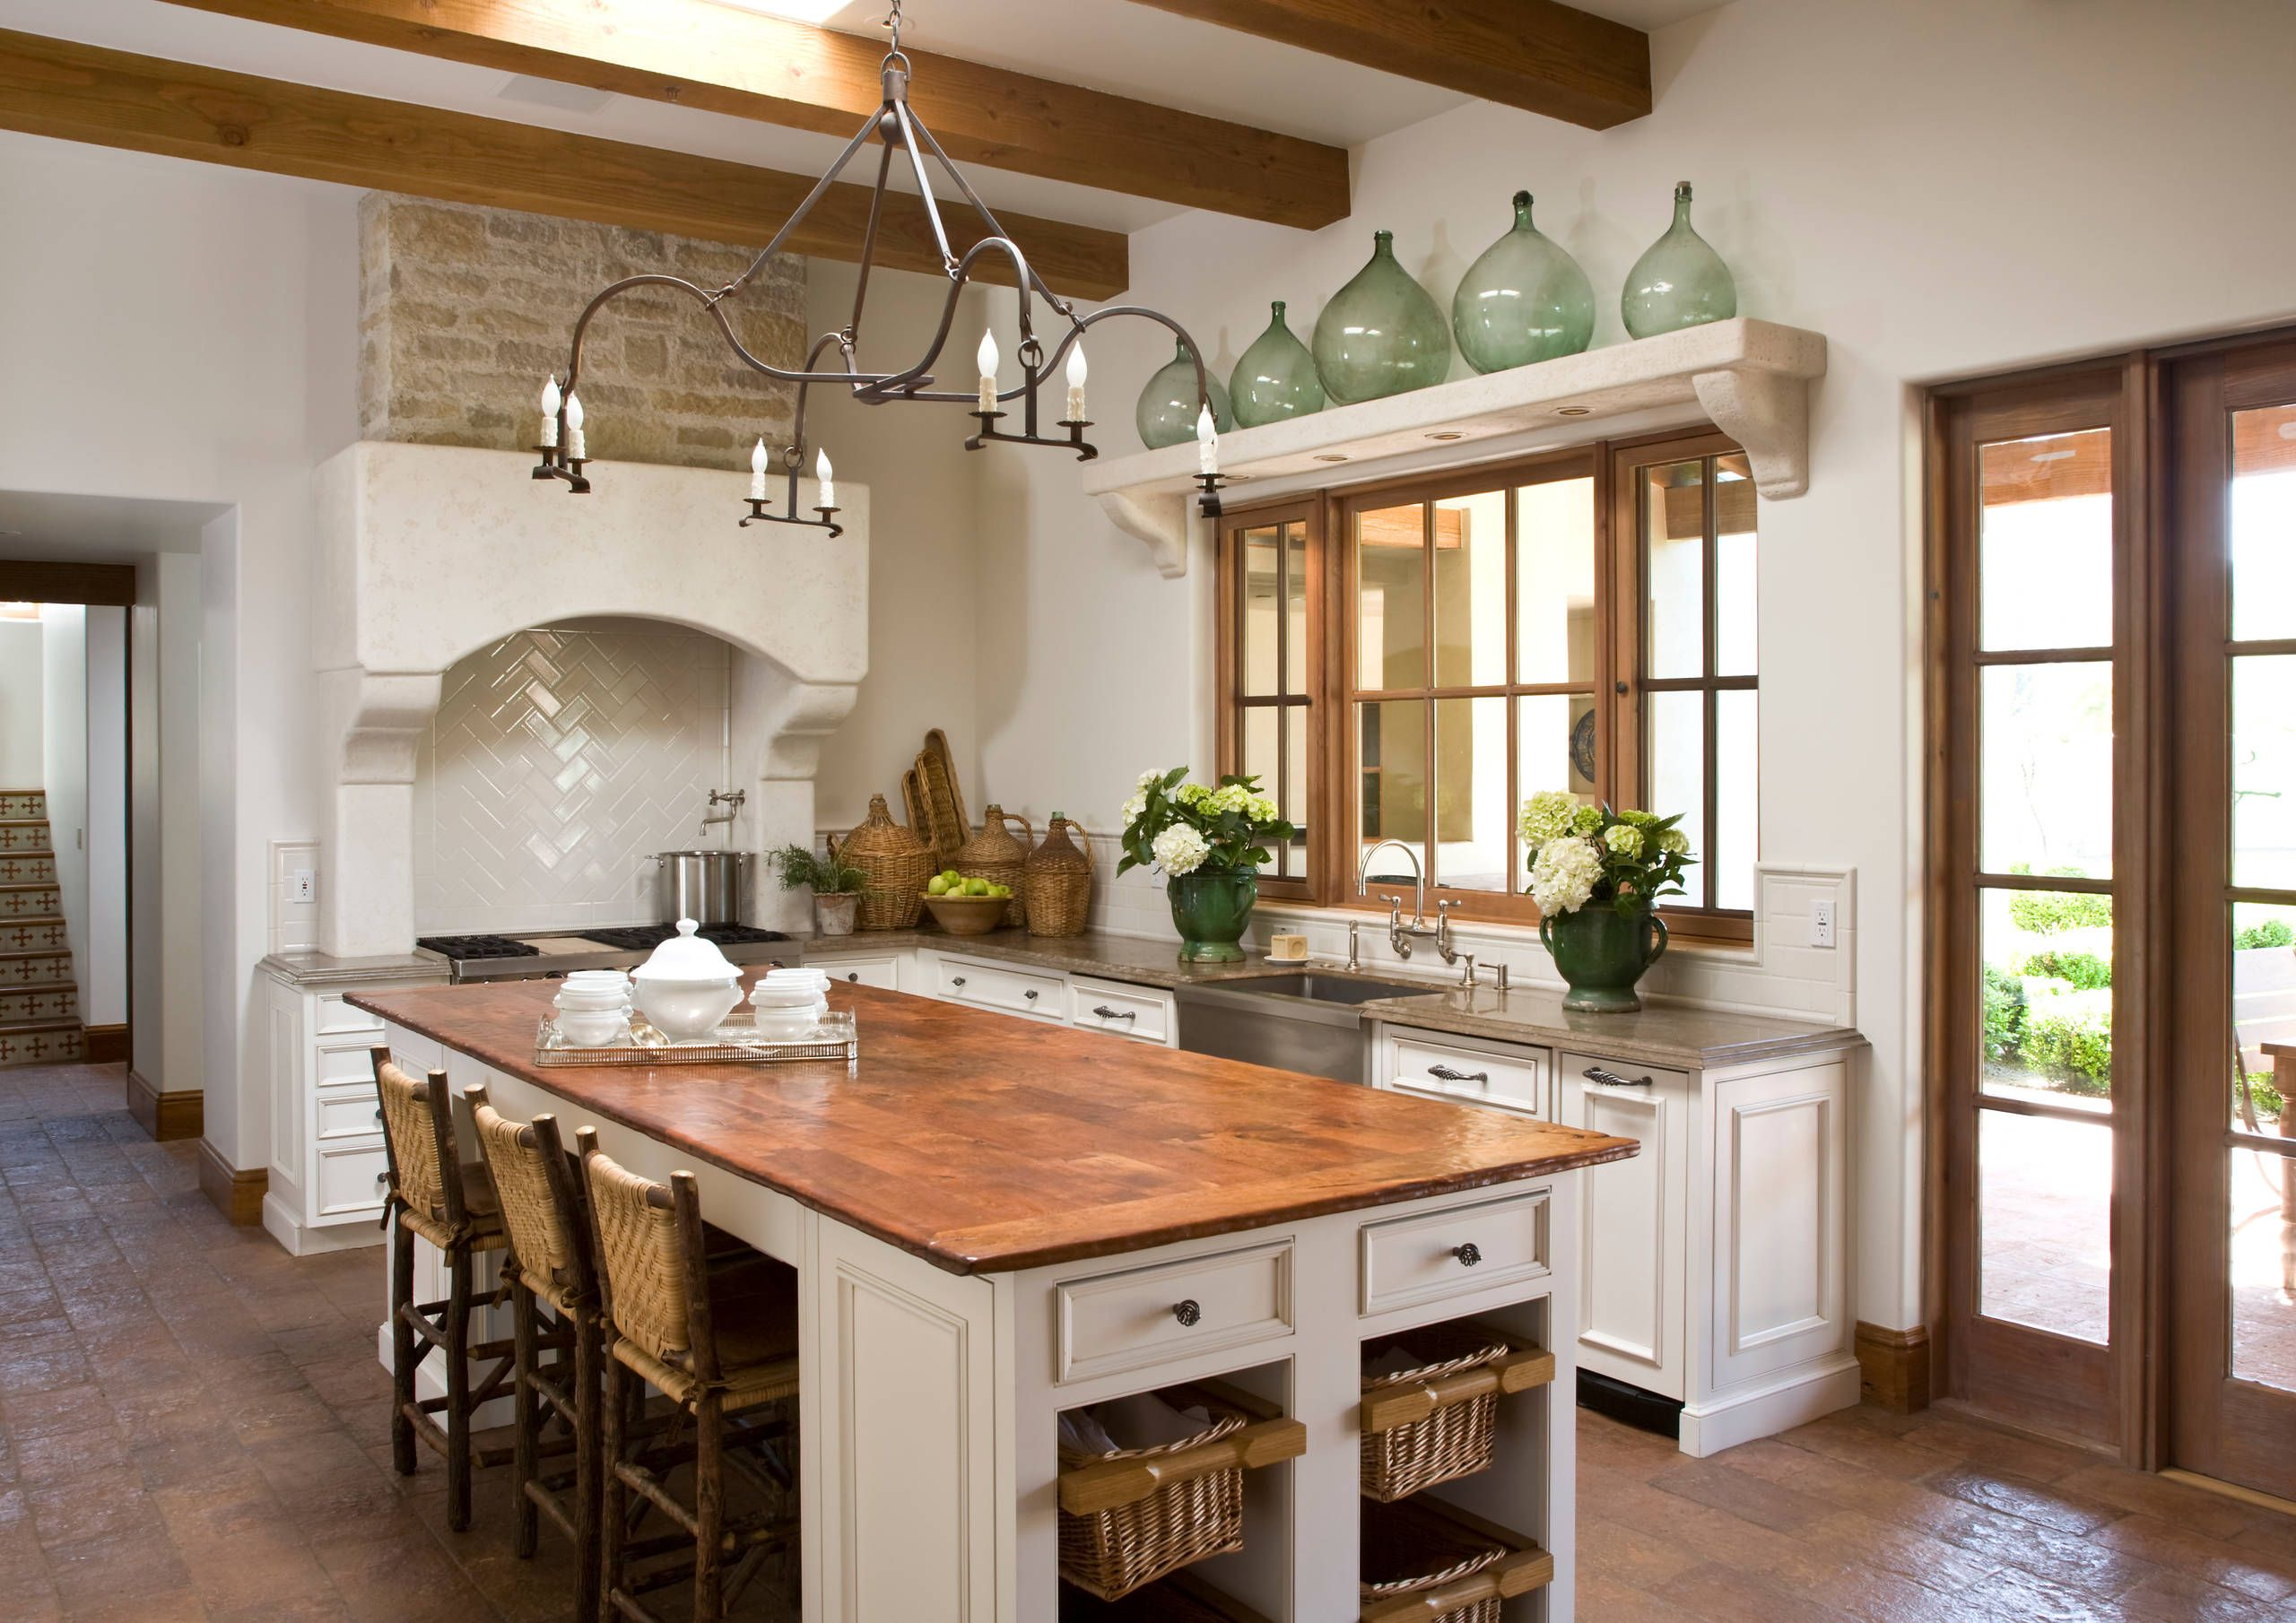 27 Southwest Kitchen Designs And Ideas Home Awakening Mediterranean Kitchen Design Country Kitchen Hacienda Kitchen